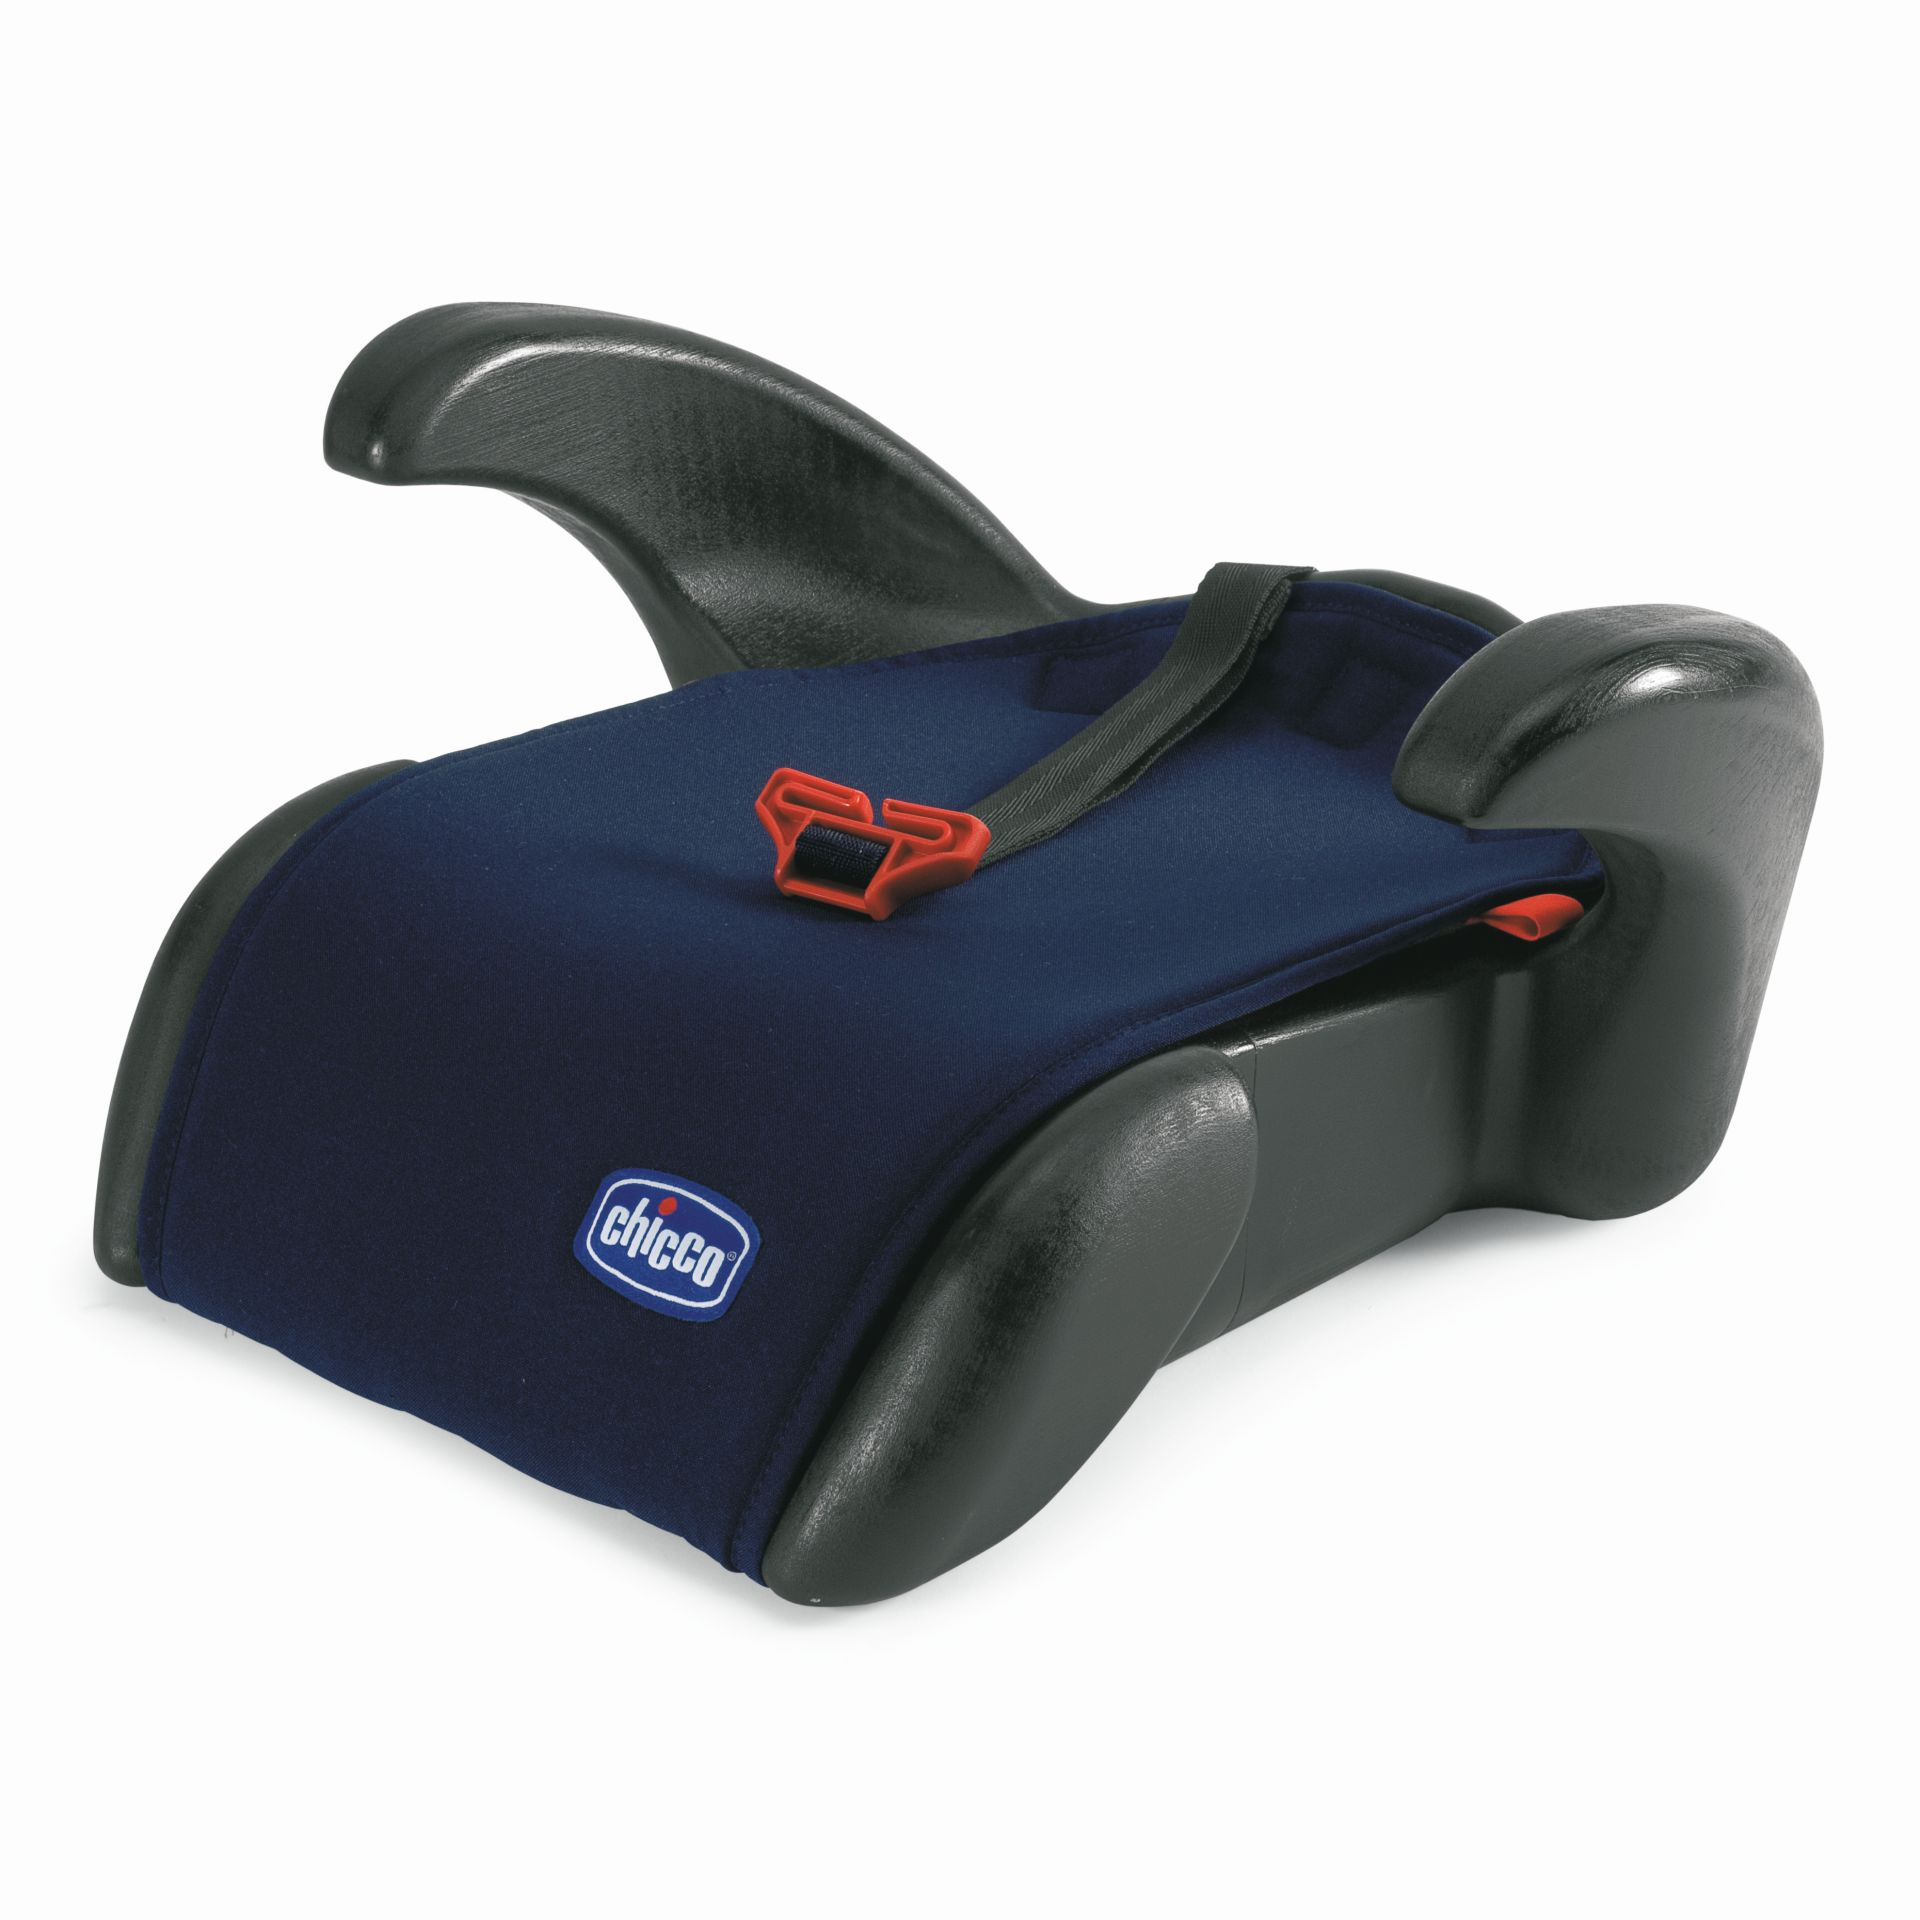 chicco quasar plus